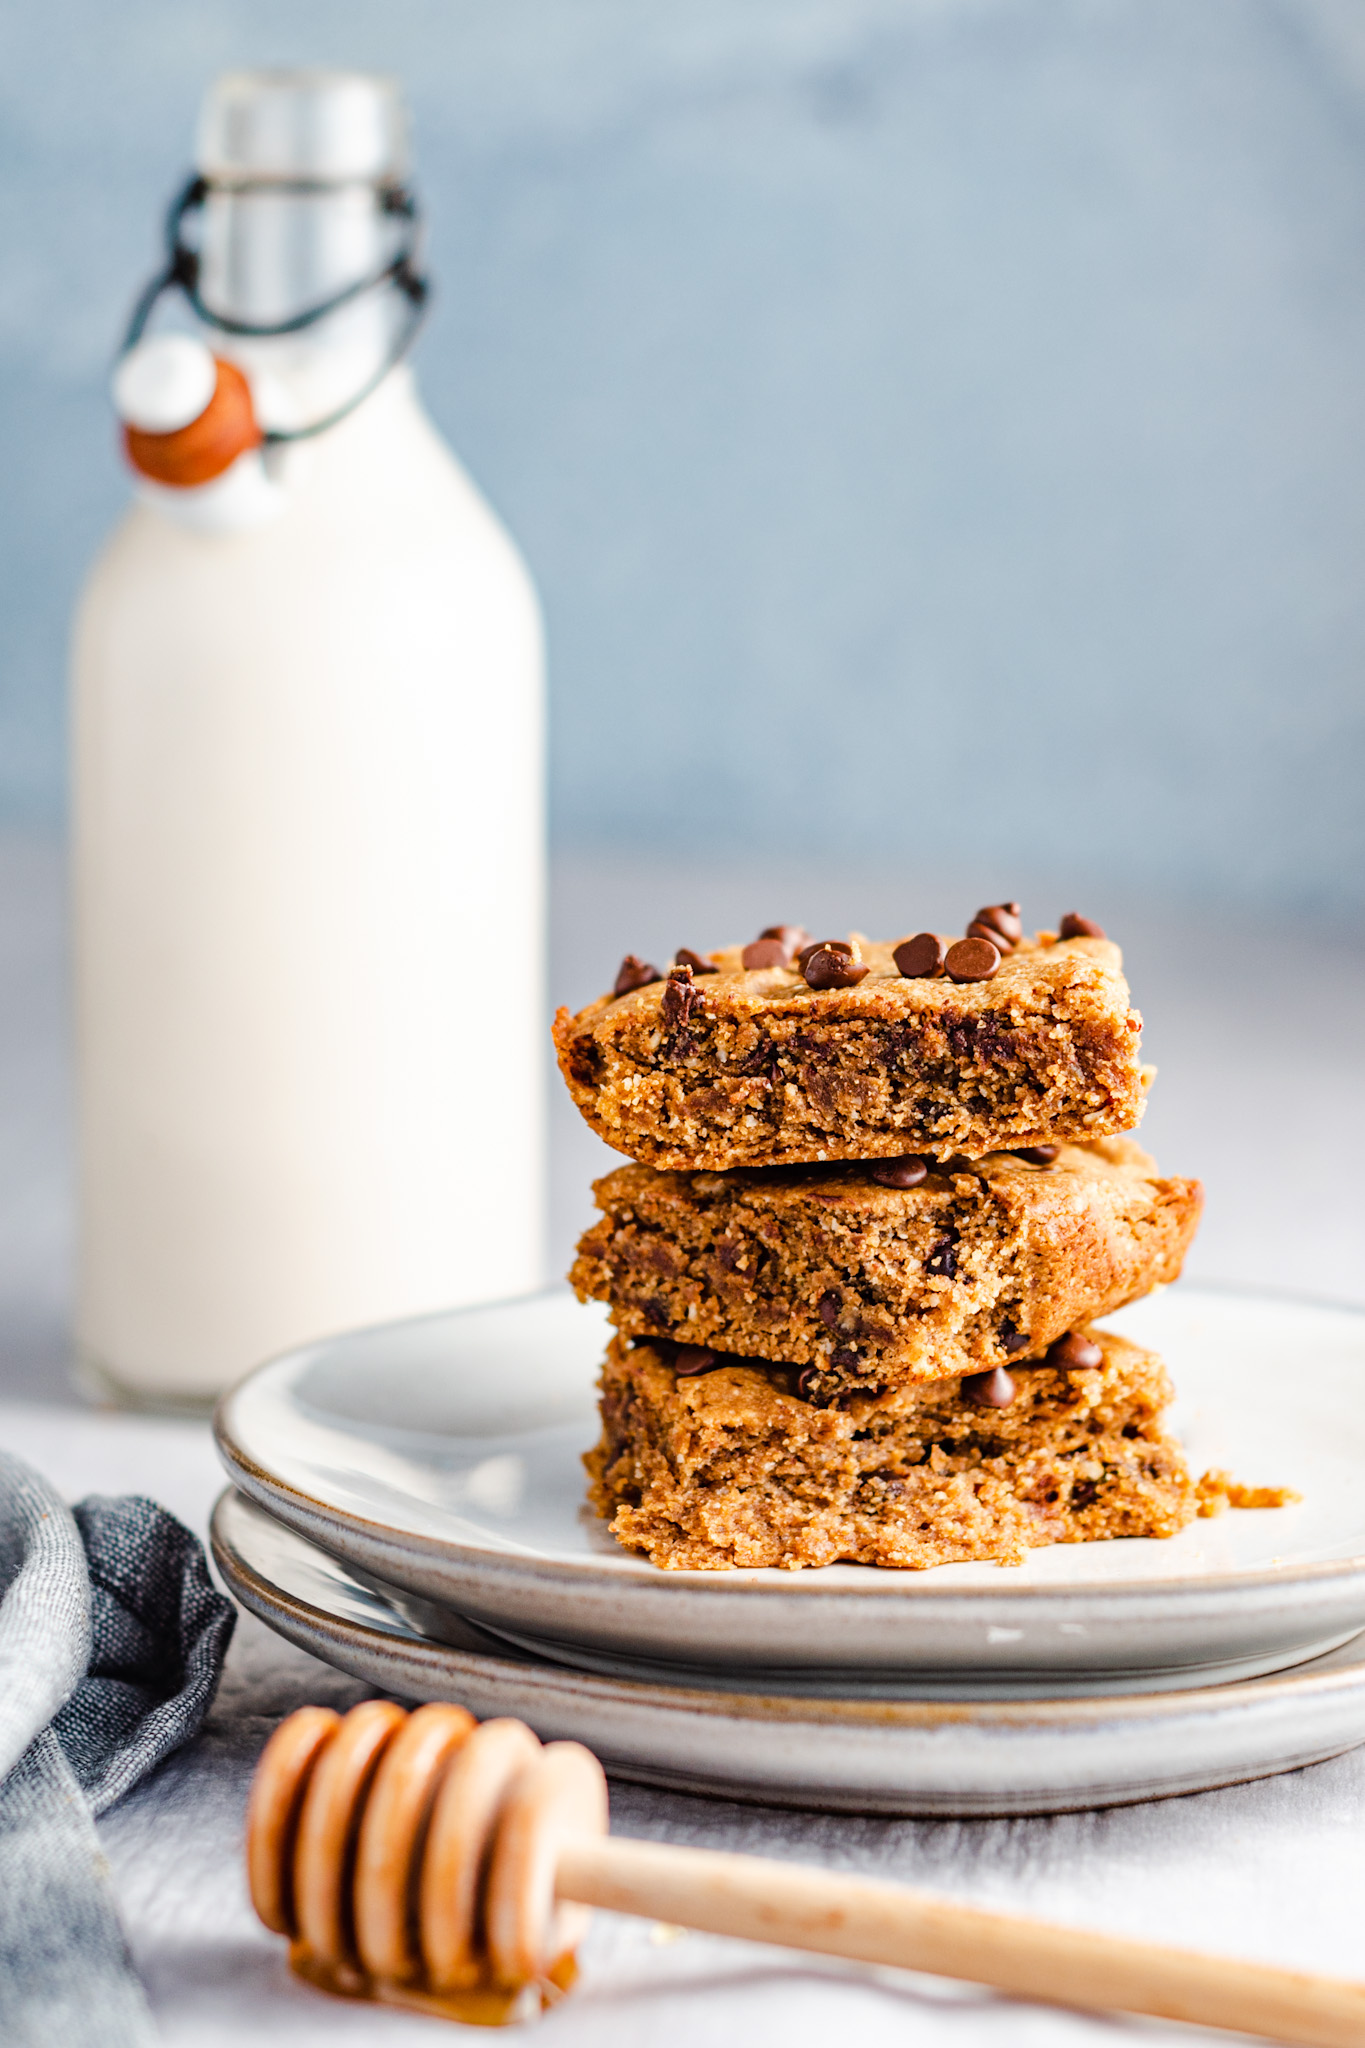 Gluten Free Healthy Chocolate Chip Cookie Bars